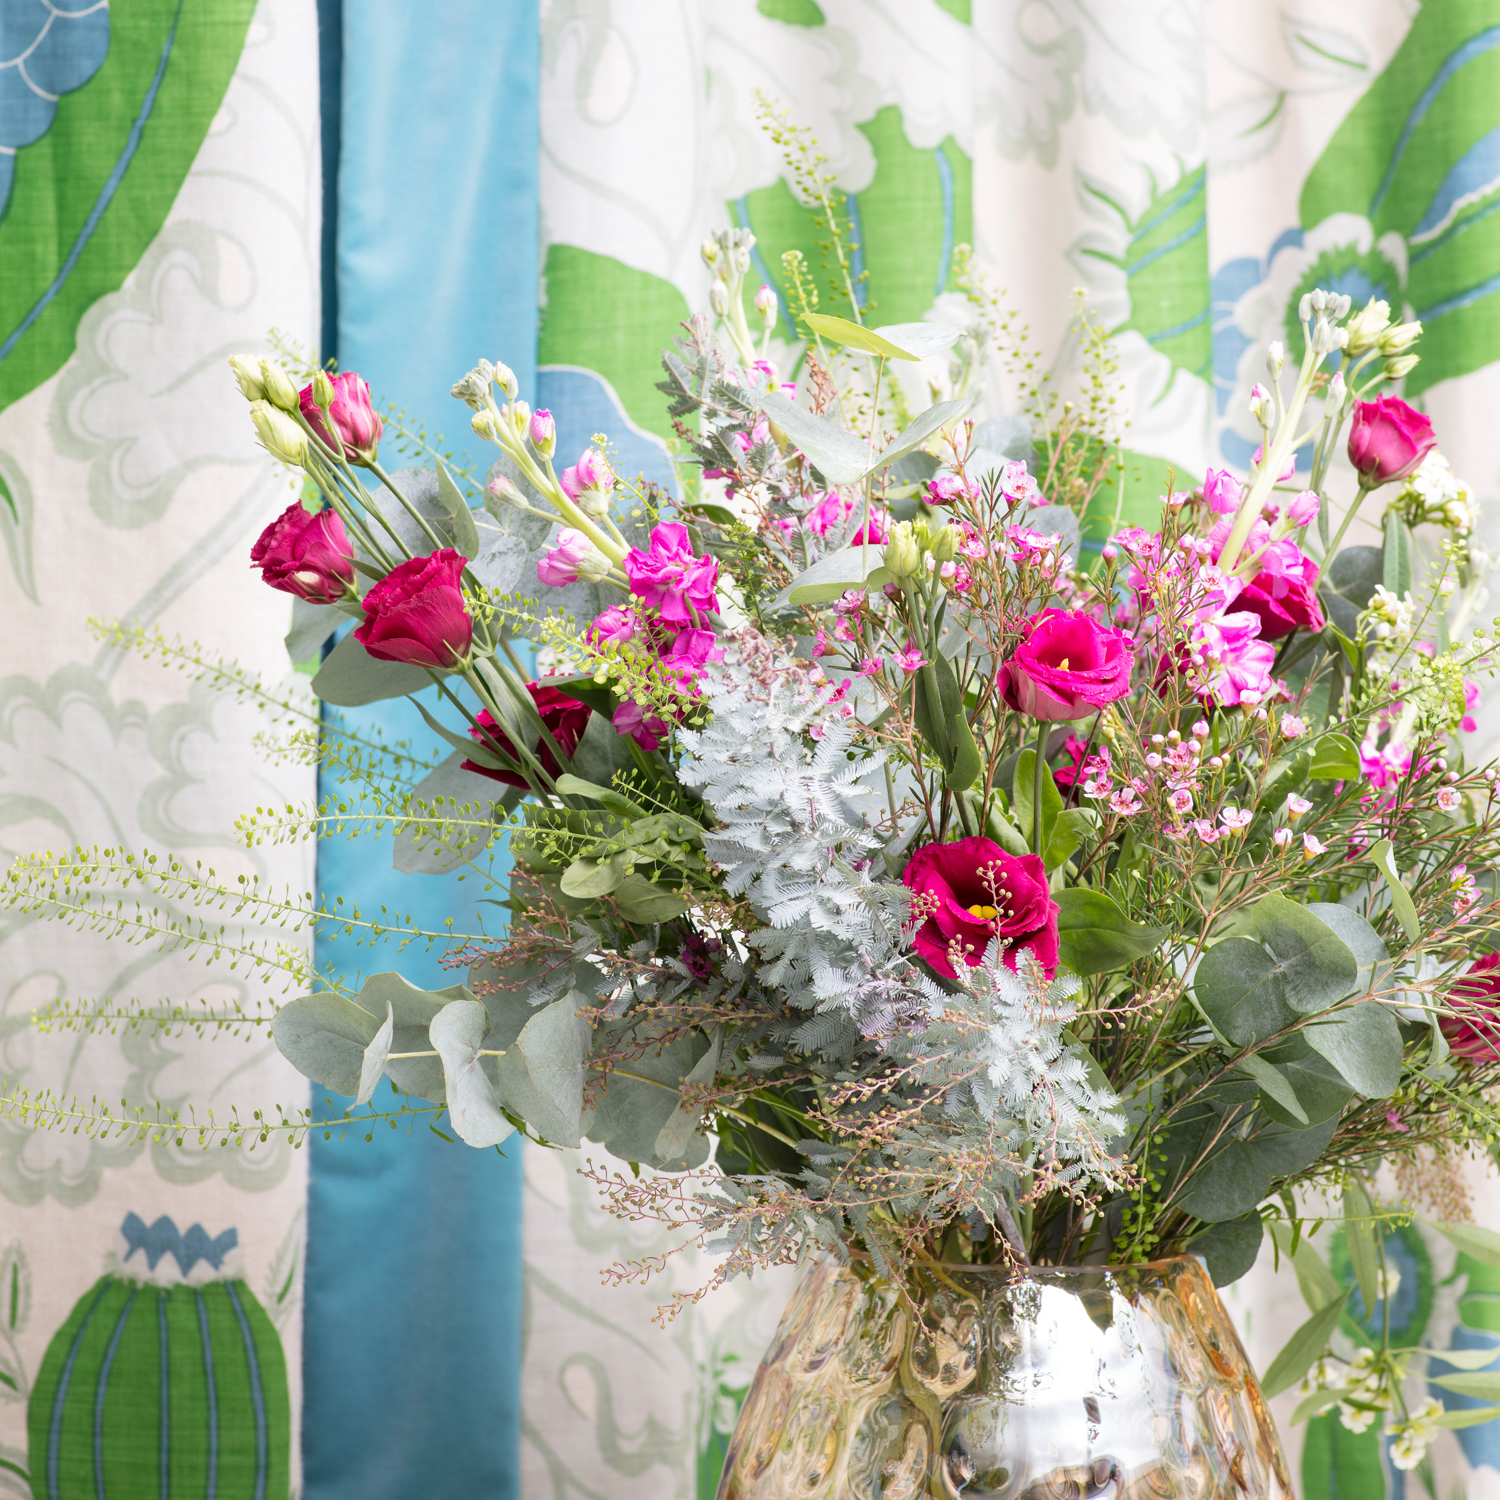 An arrangement in The Pink House den/Photo: Susie Lowe